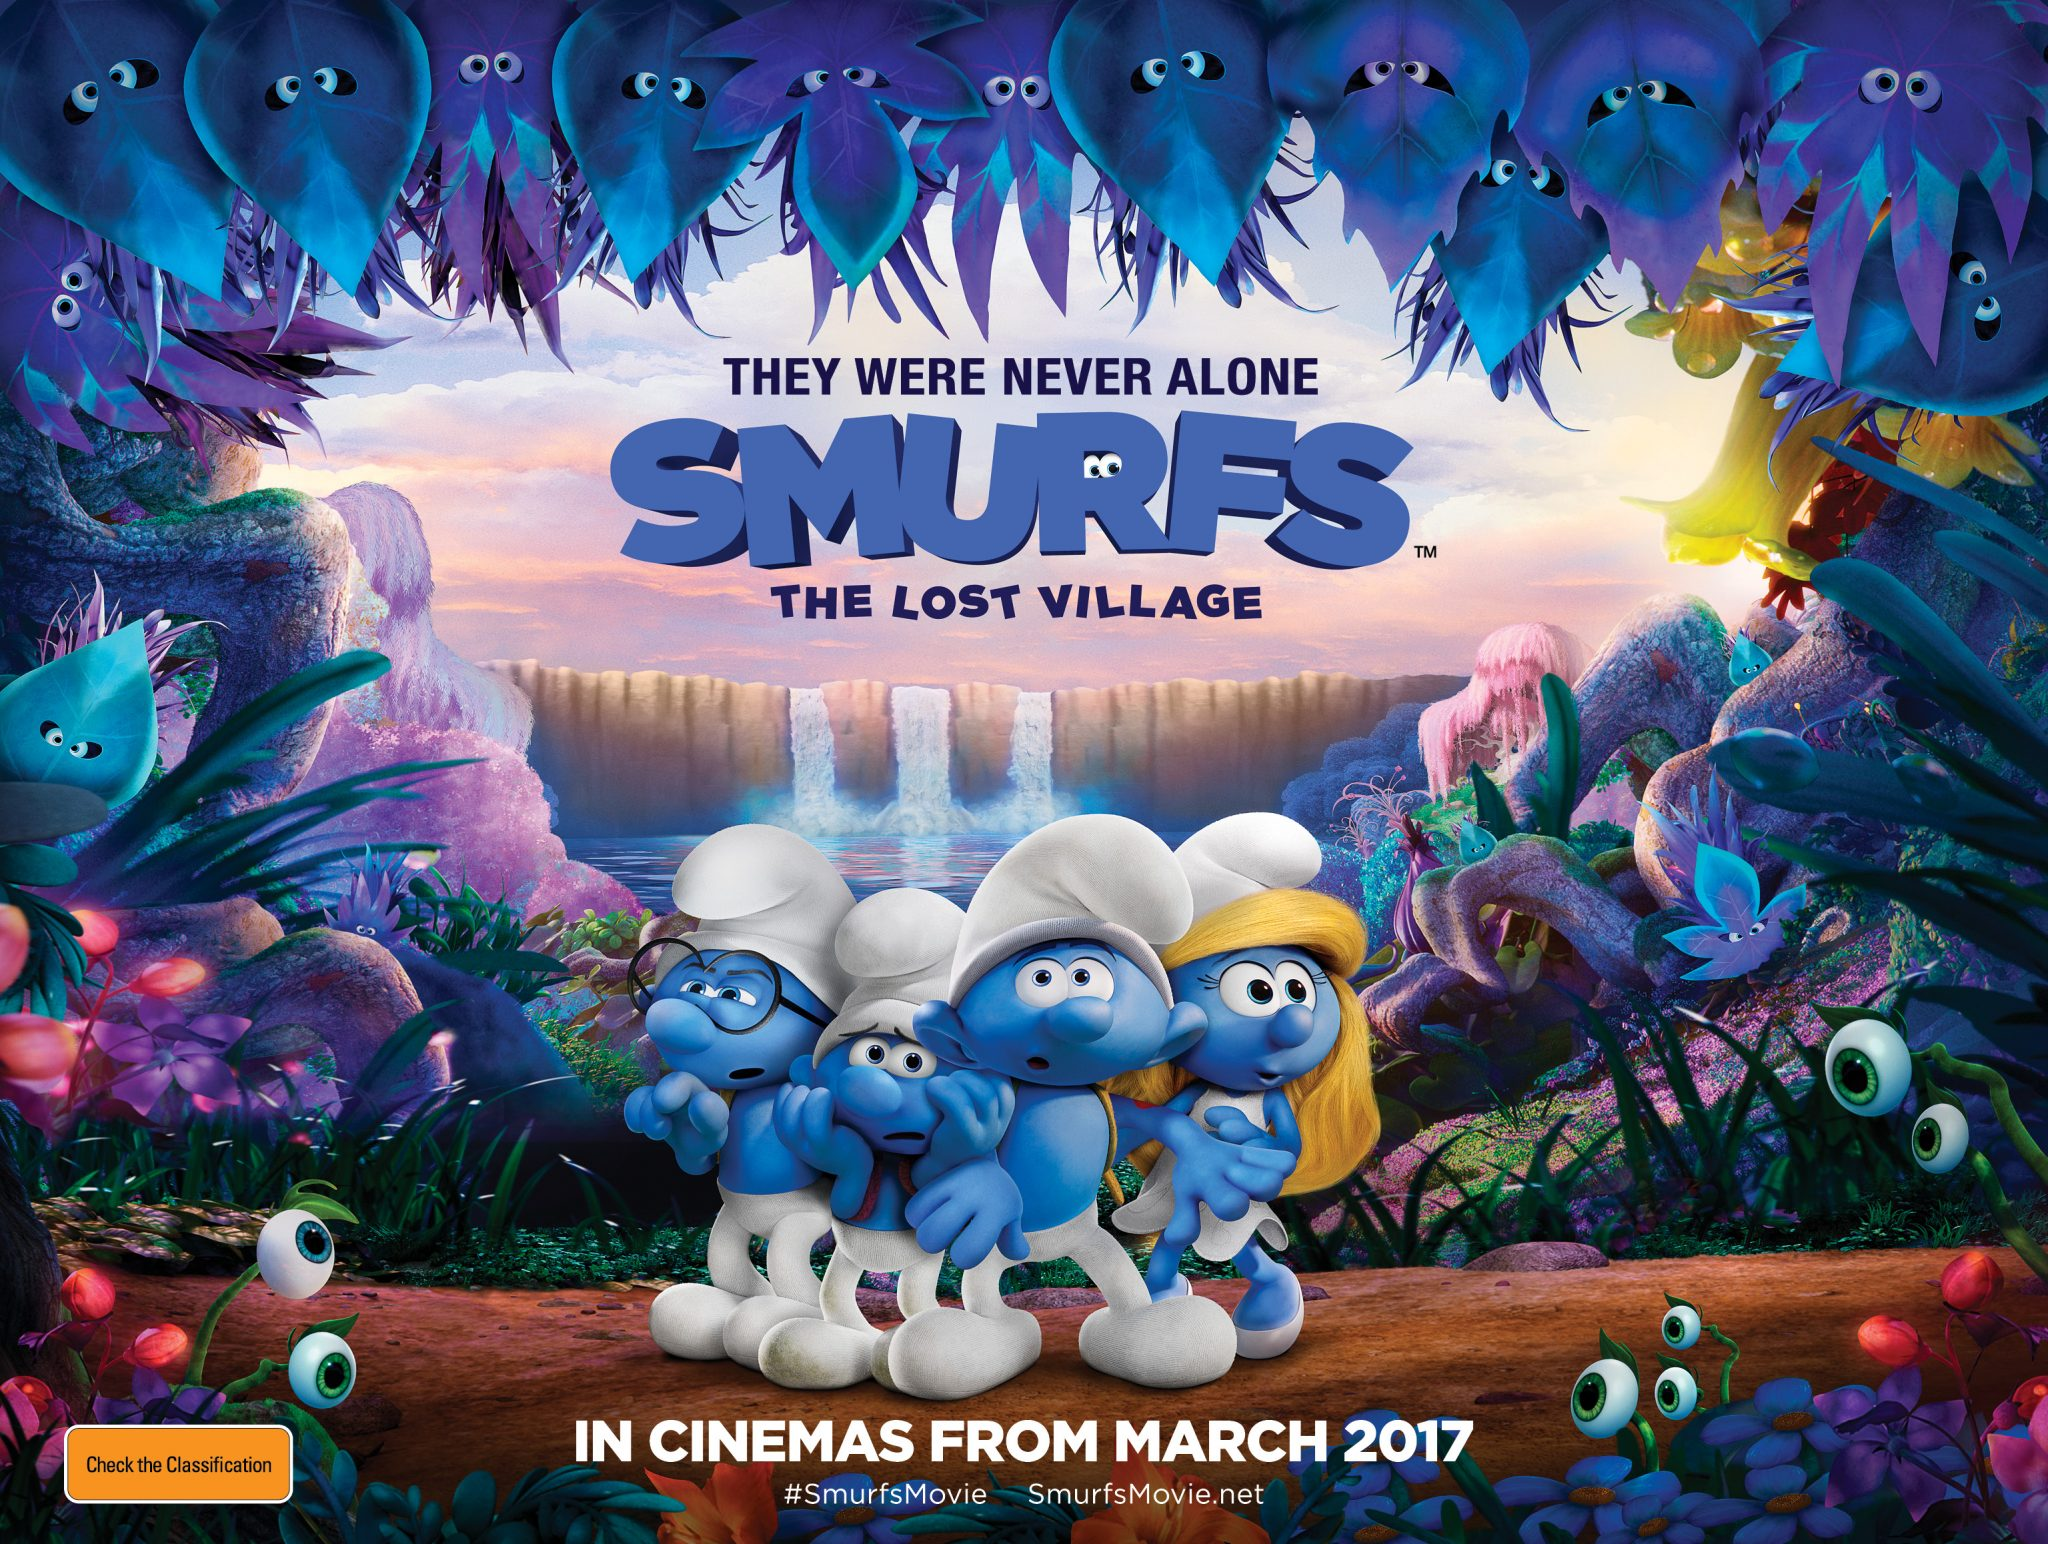 The Smurfs 2 3d Live Wallpaper Review Smurfs The Lost Village By Jonathan Evans Get